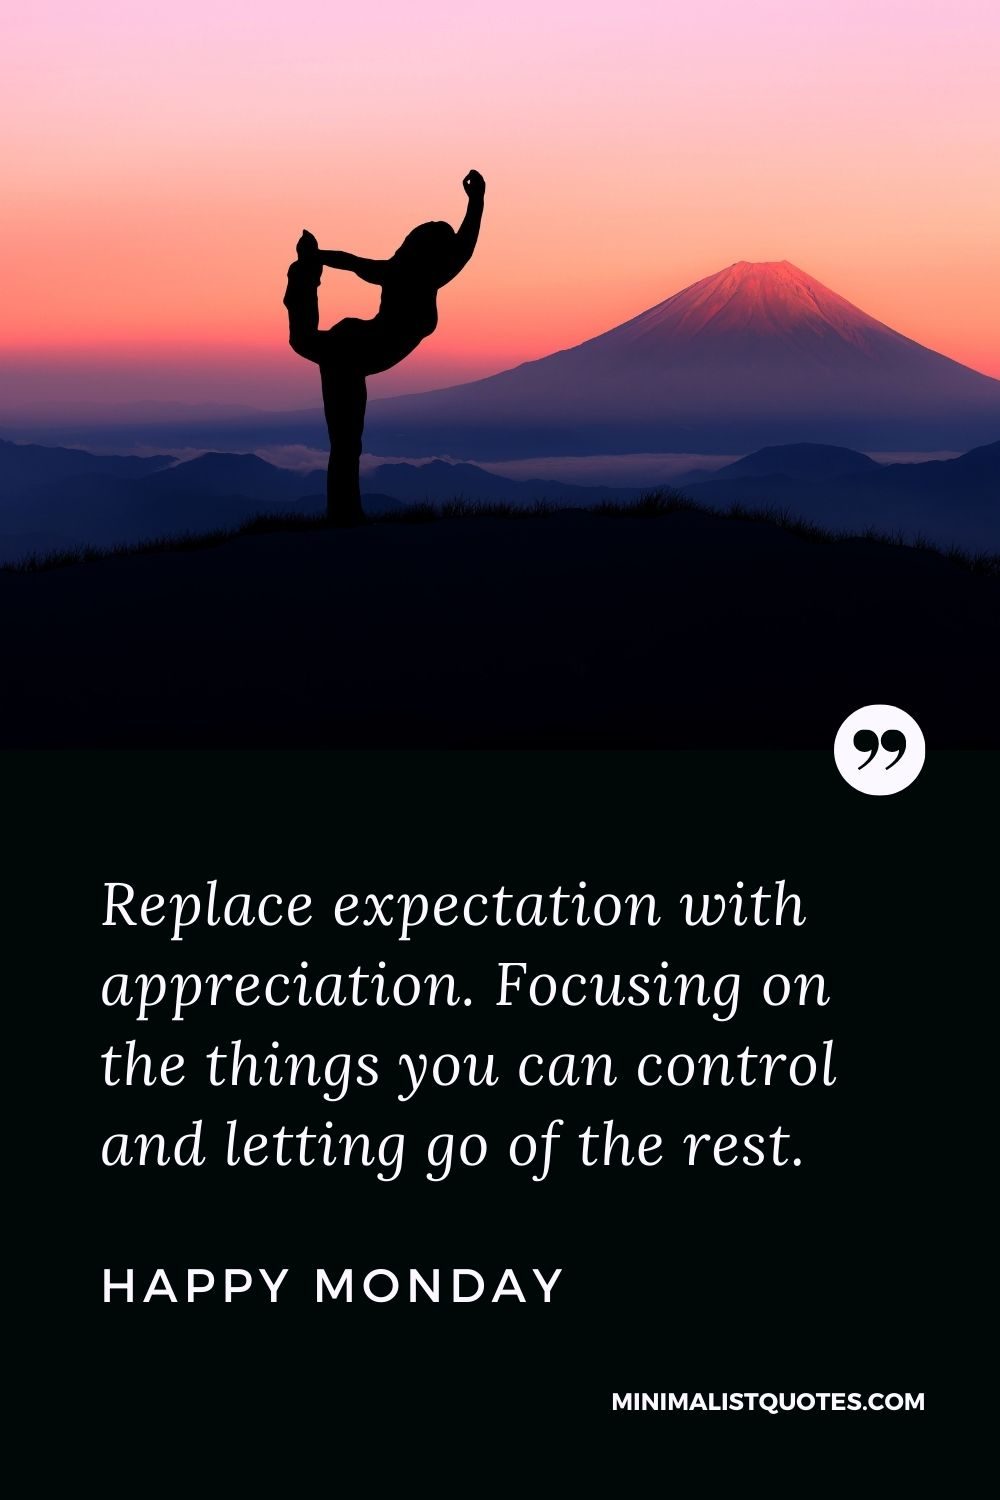 Monday Motivation Quote & Message with Image: Replace expectation with appreciation. Focusing on the things you can control and letting go of the rest. Happy Monday!